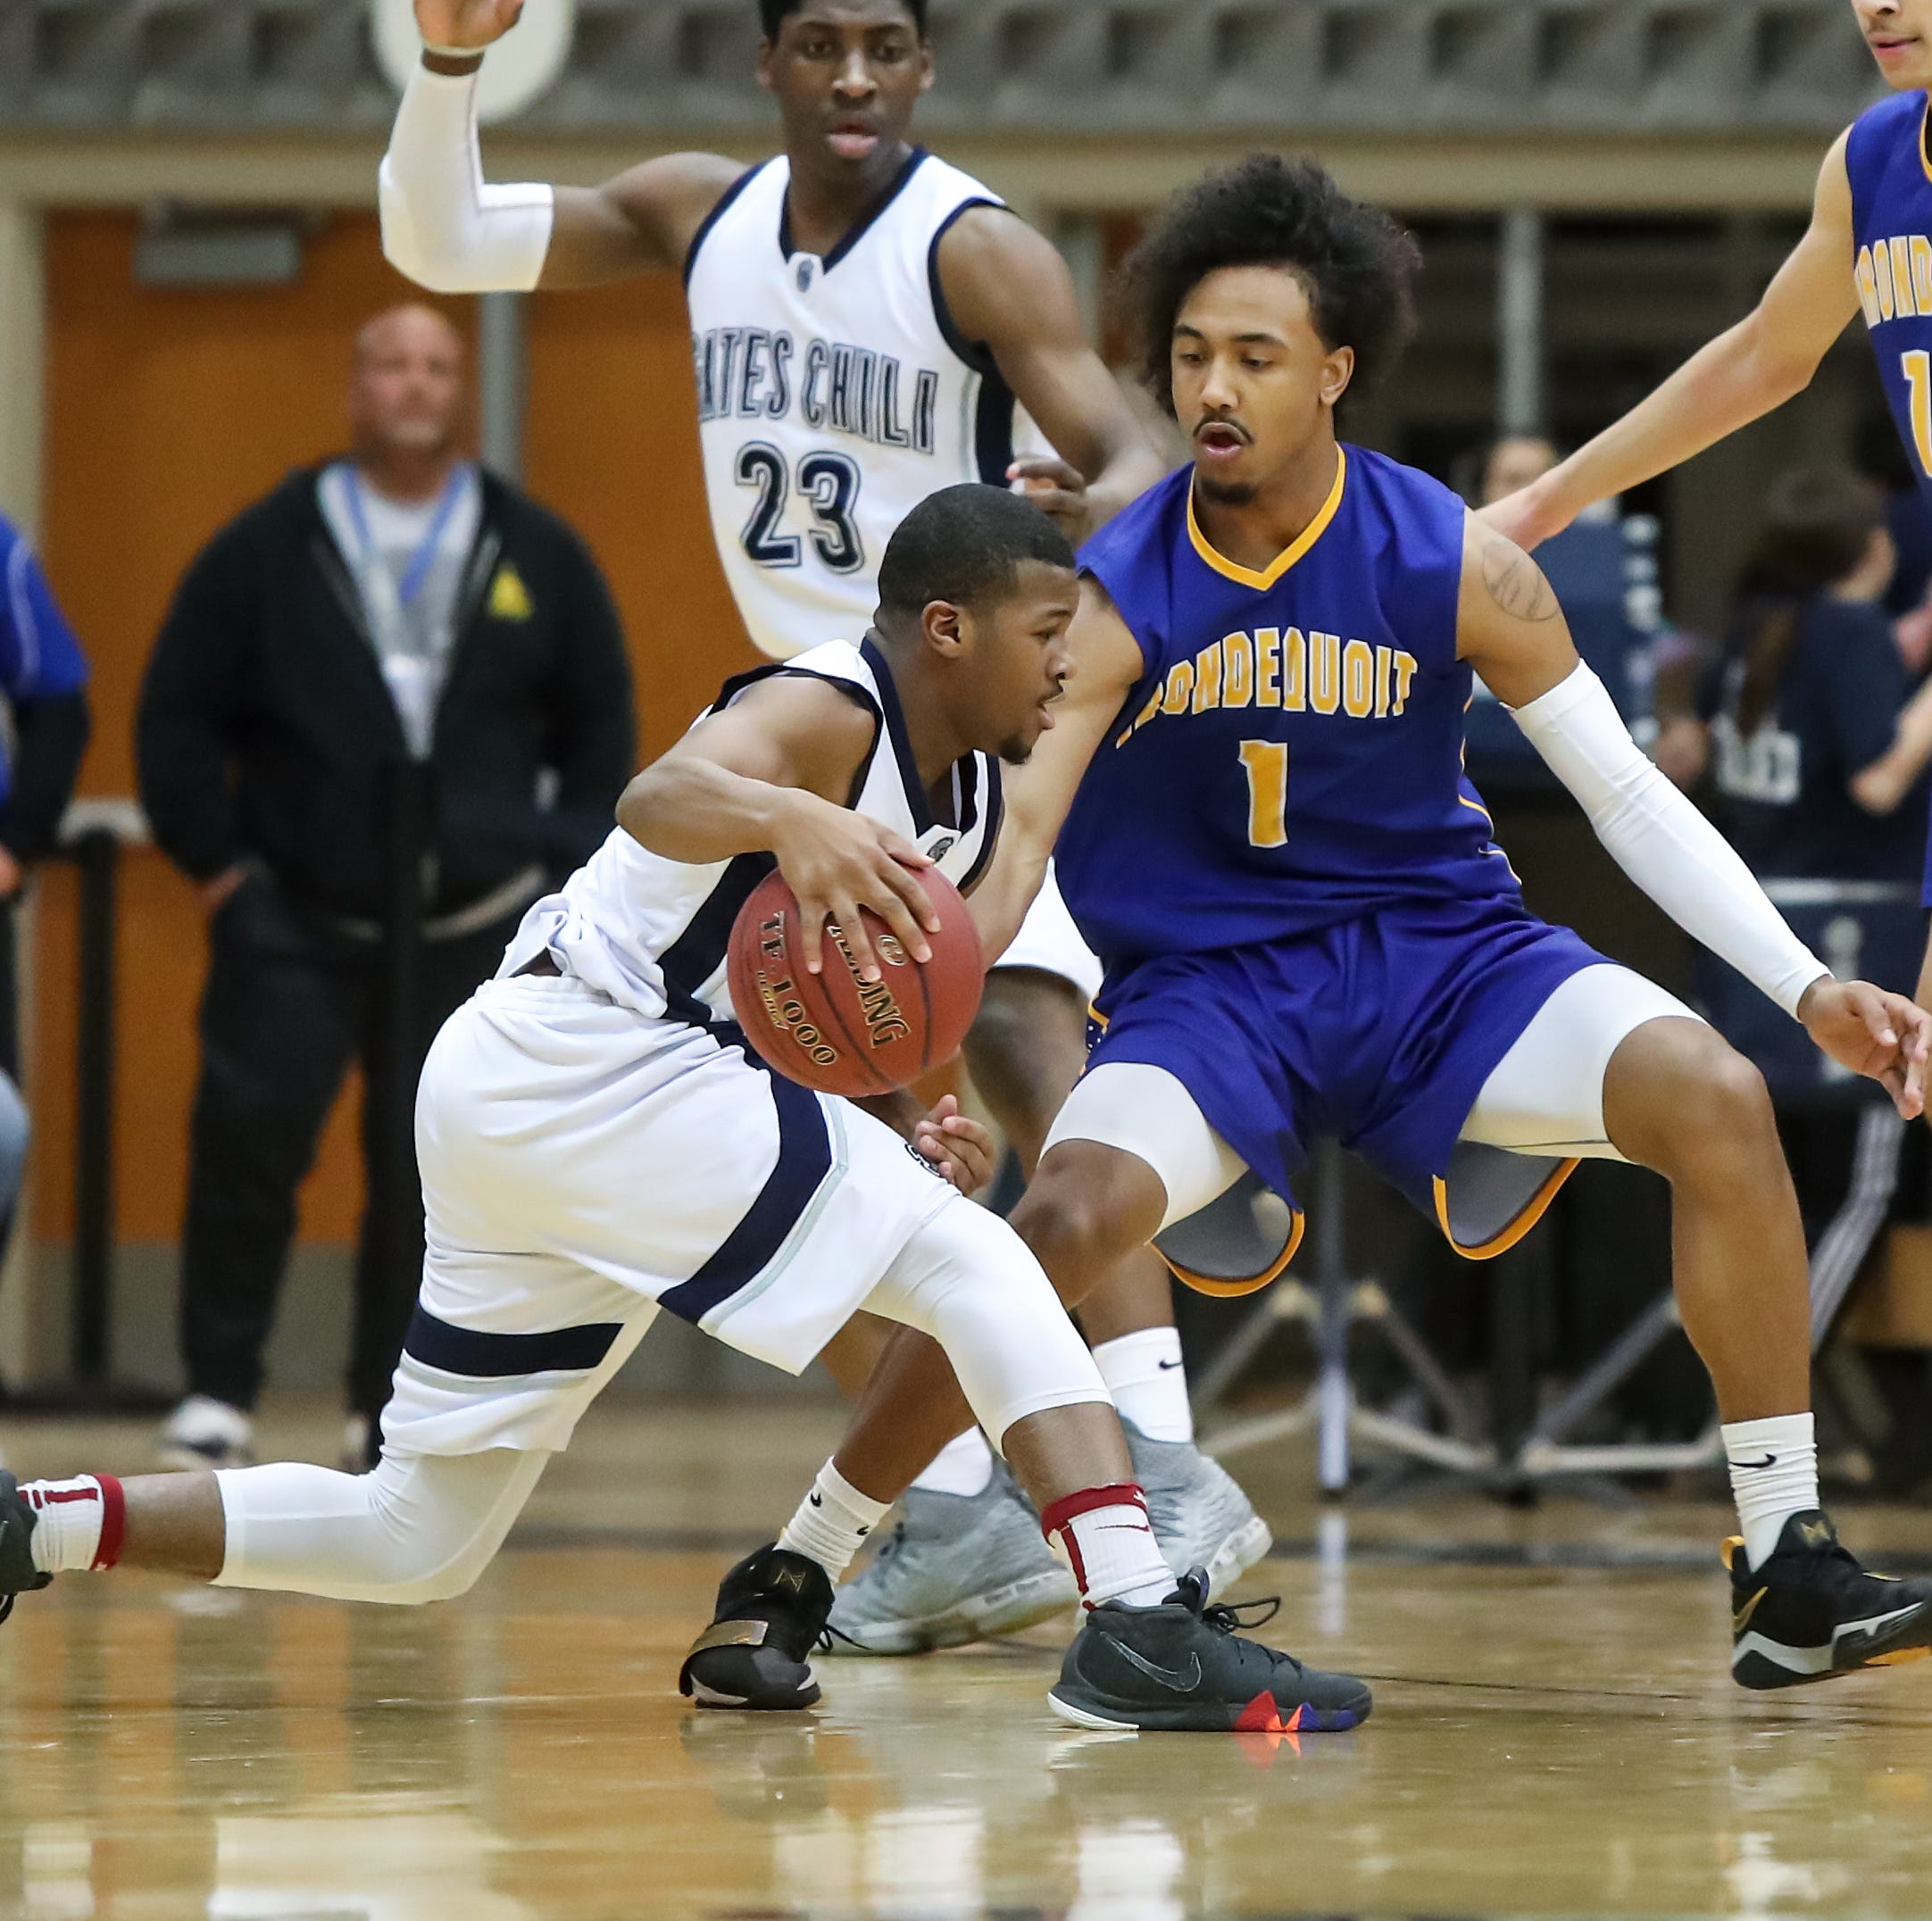 Gates Chili guard Keith Slack (3) is defended by Irondequoit guard Freddy June Jr (1) during a Section V high school boys basketball game at Gates Chili High School on Feb. 1, 2019.